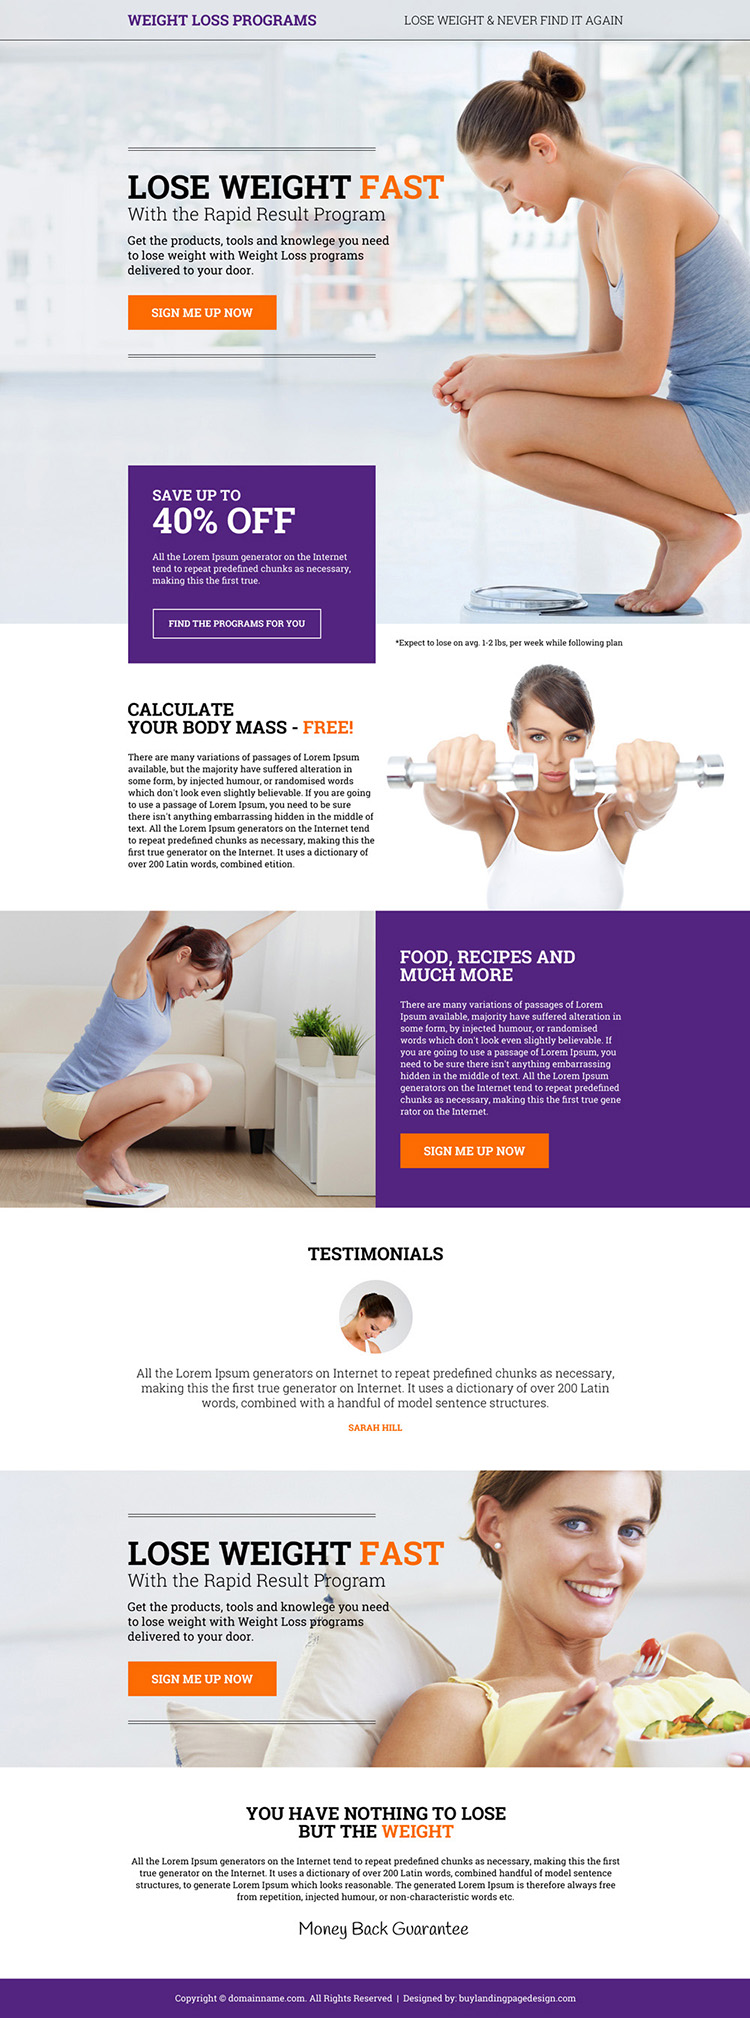 eye catching weight loss program sign up capturing responsive landing page design